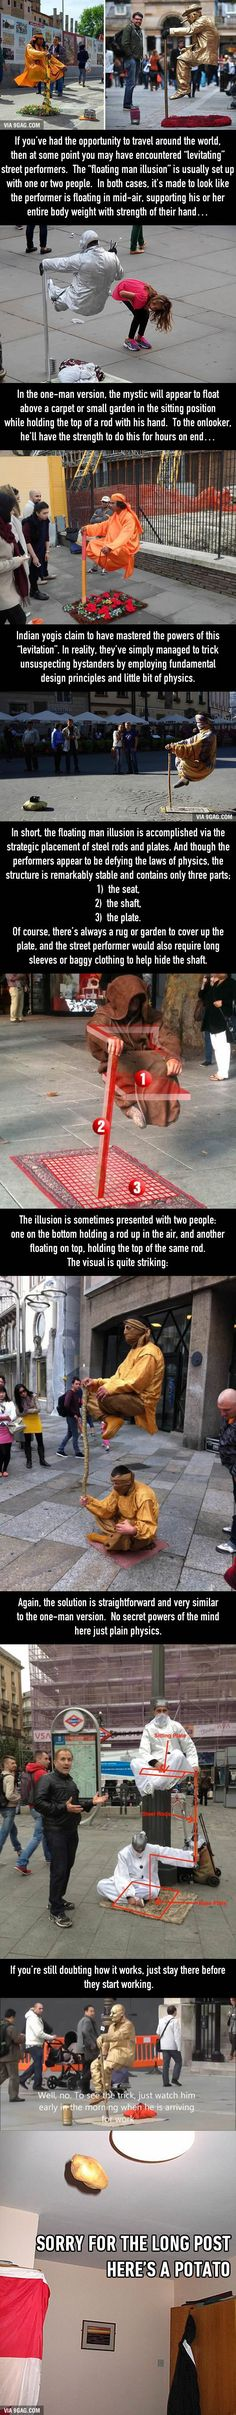 How do levitating street performers work? The More You Know, Good To Know, Weird Facts, Fun Facts, Random Facts, Random Things, Random Stuff, Looks Cool, Things To Know